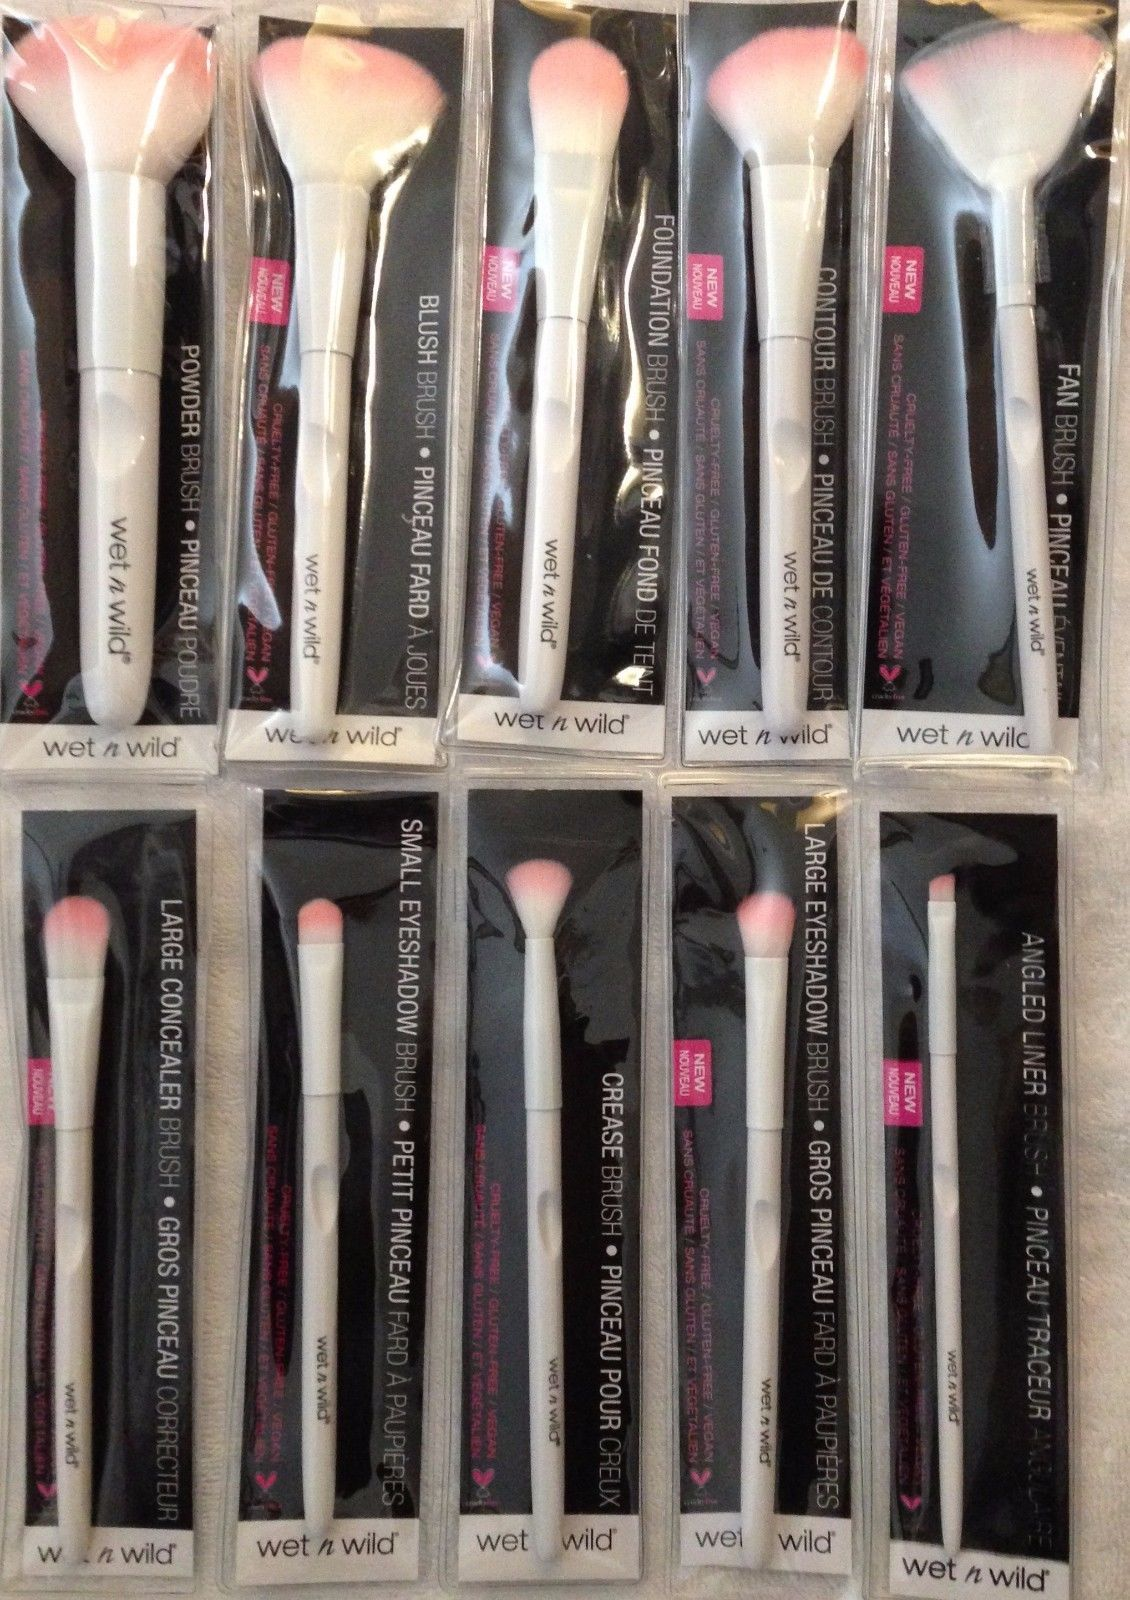 wet n wild makeup brushes. brushes: wet n wild makeup brushes lot of 10 pink white crease blush fan brush w